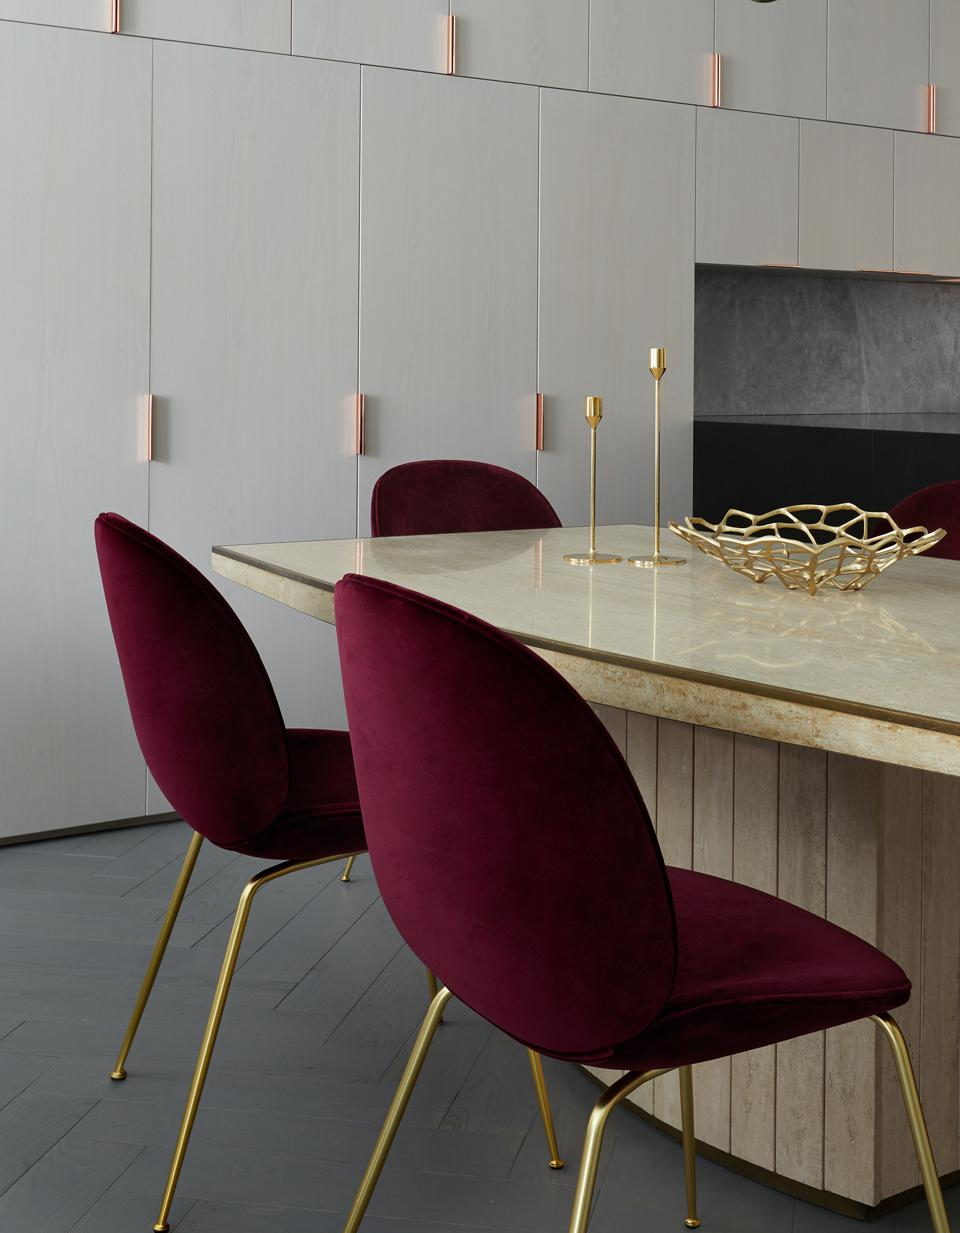 The dining area features a table by Willy Rizzo, and Beetle Chairs by Gubi.